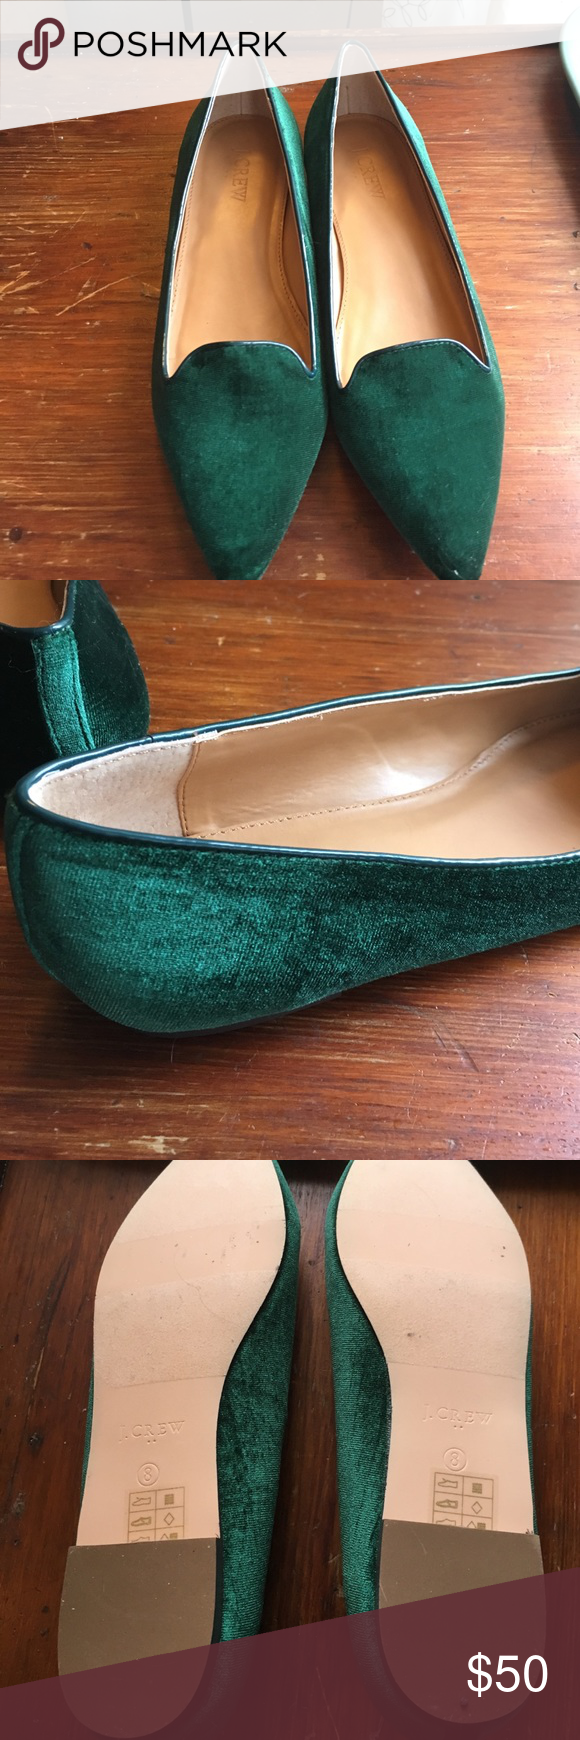 J Crew Velvet Pointed Flats These are gorgeous green velvet flats from J. Crew. The pointed design means that these do run narrow. J. Crew Shoes Flats & Loafers